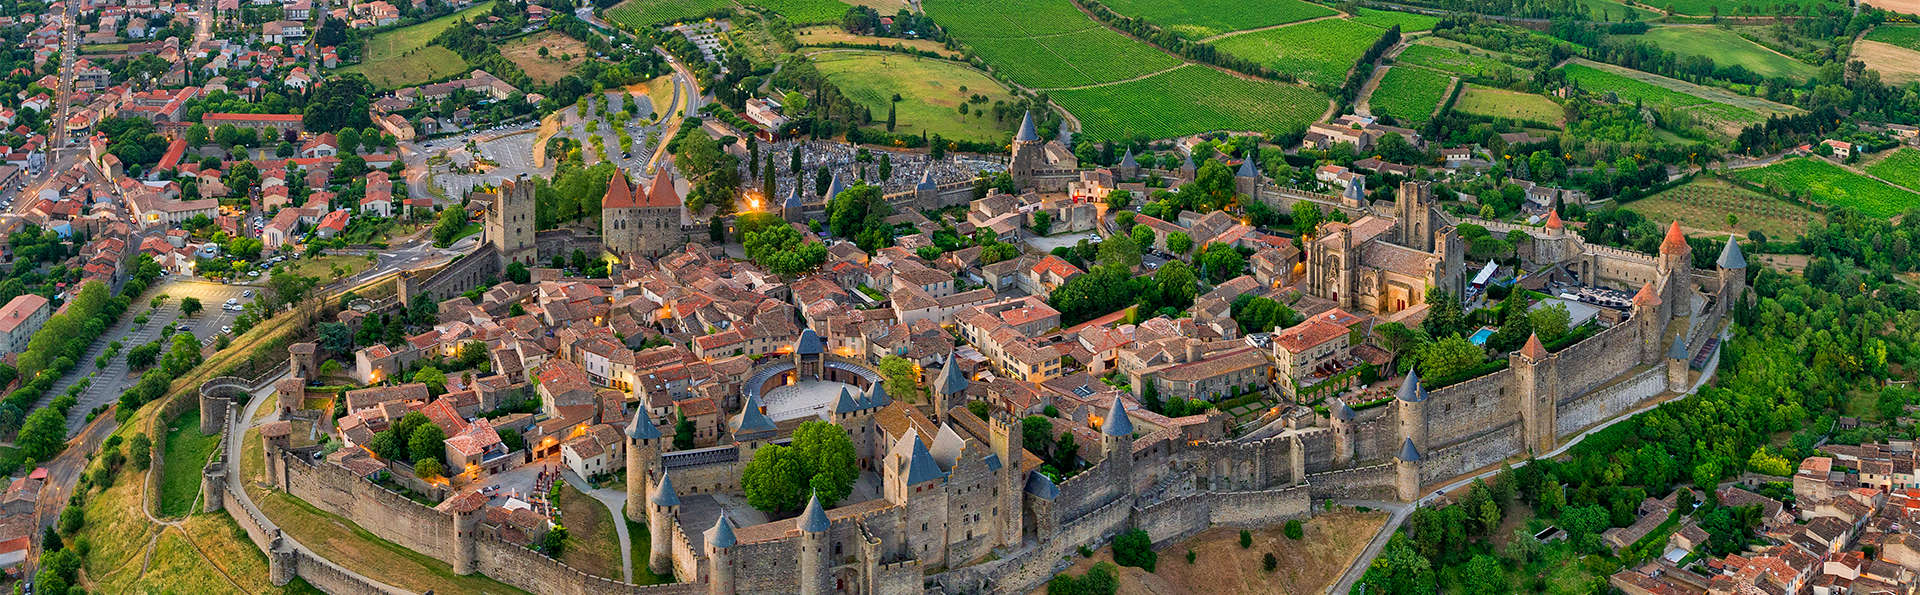 Adonis Carcassonne - La Barbacane - EDIT_Destination_Carcassonne.jpg